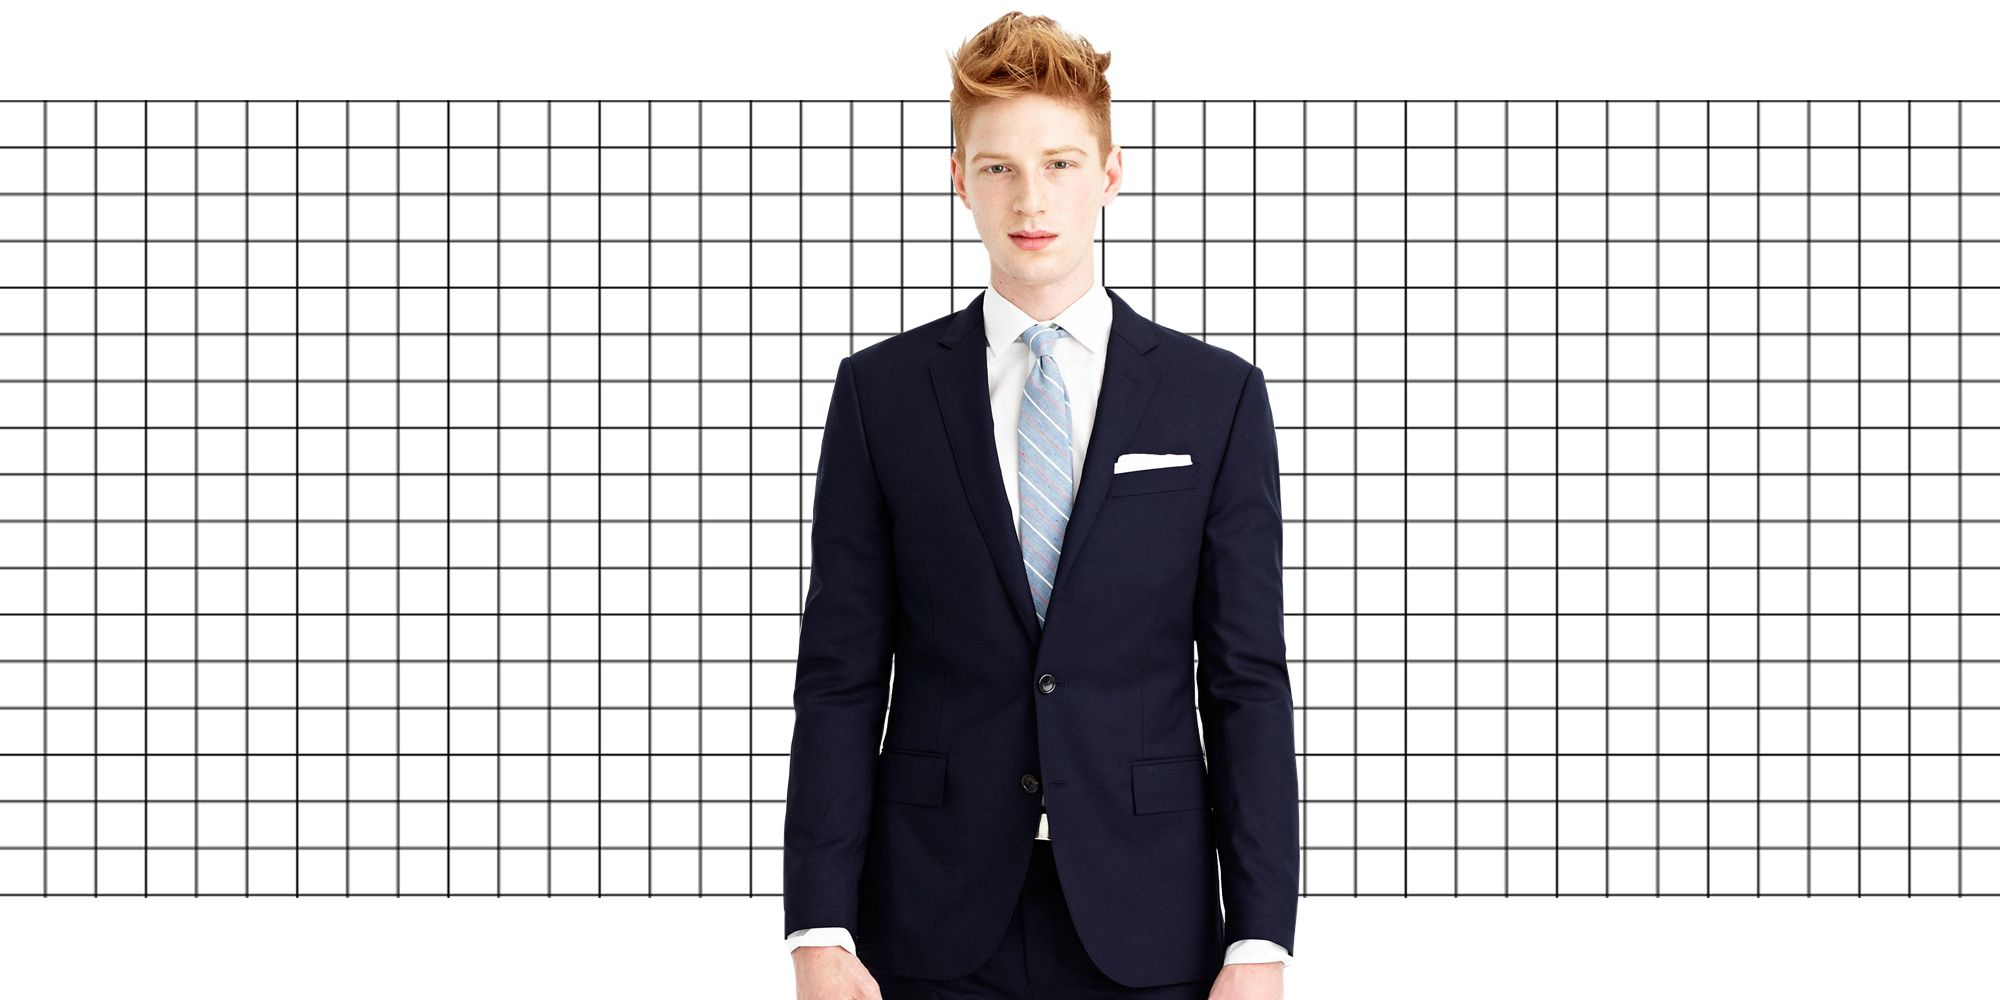 224c2bc7600 How Should I Dress For the Office  - How Should a Man Dress for Work